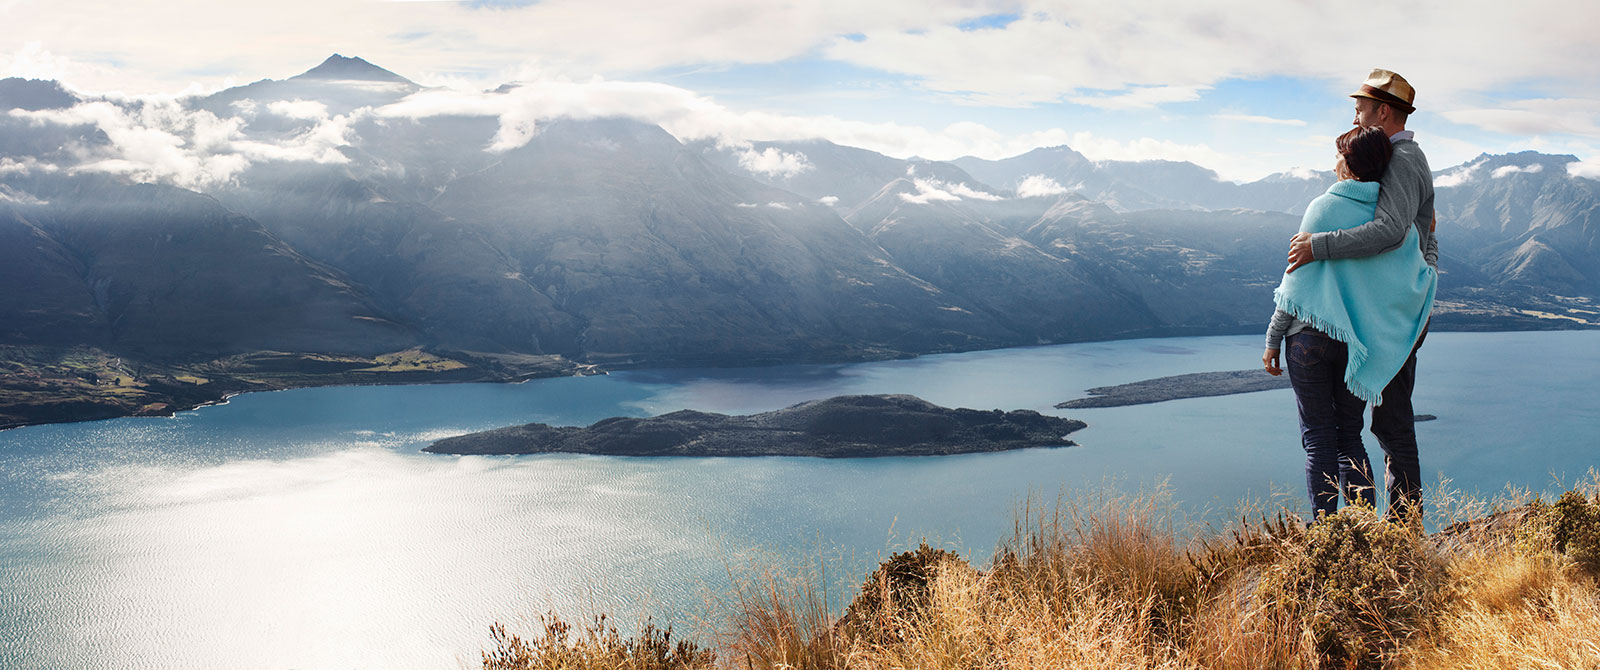 Looking Over Lake Wakatipu in Queenstown, New Zealand